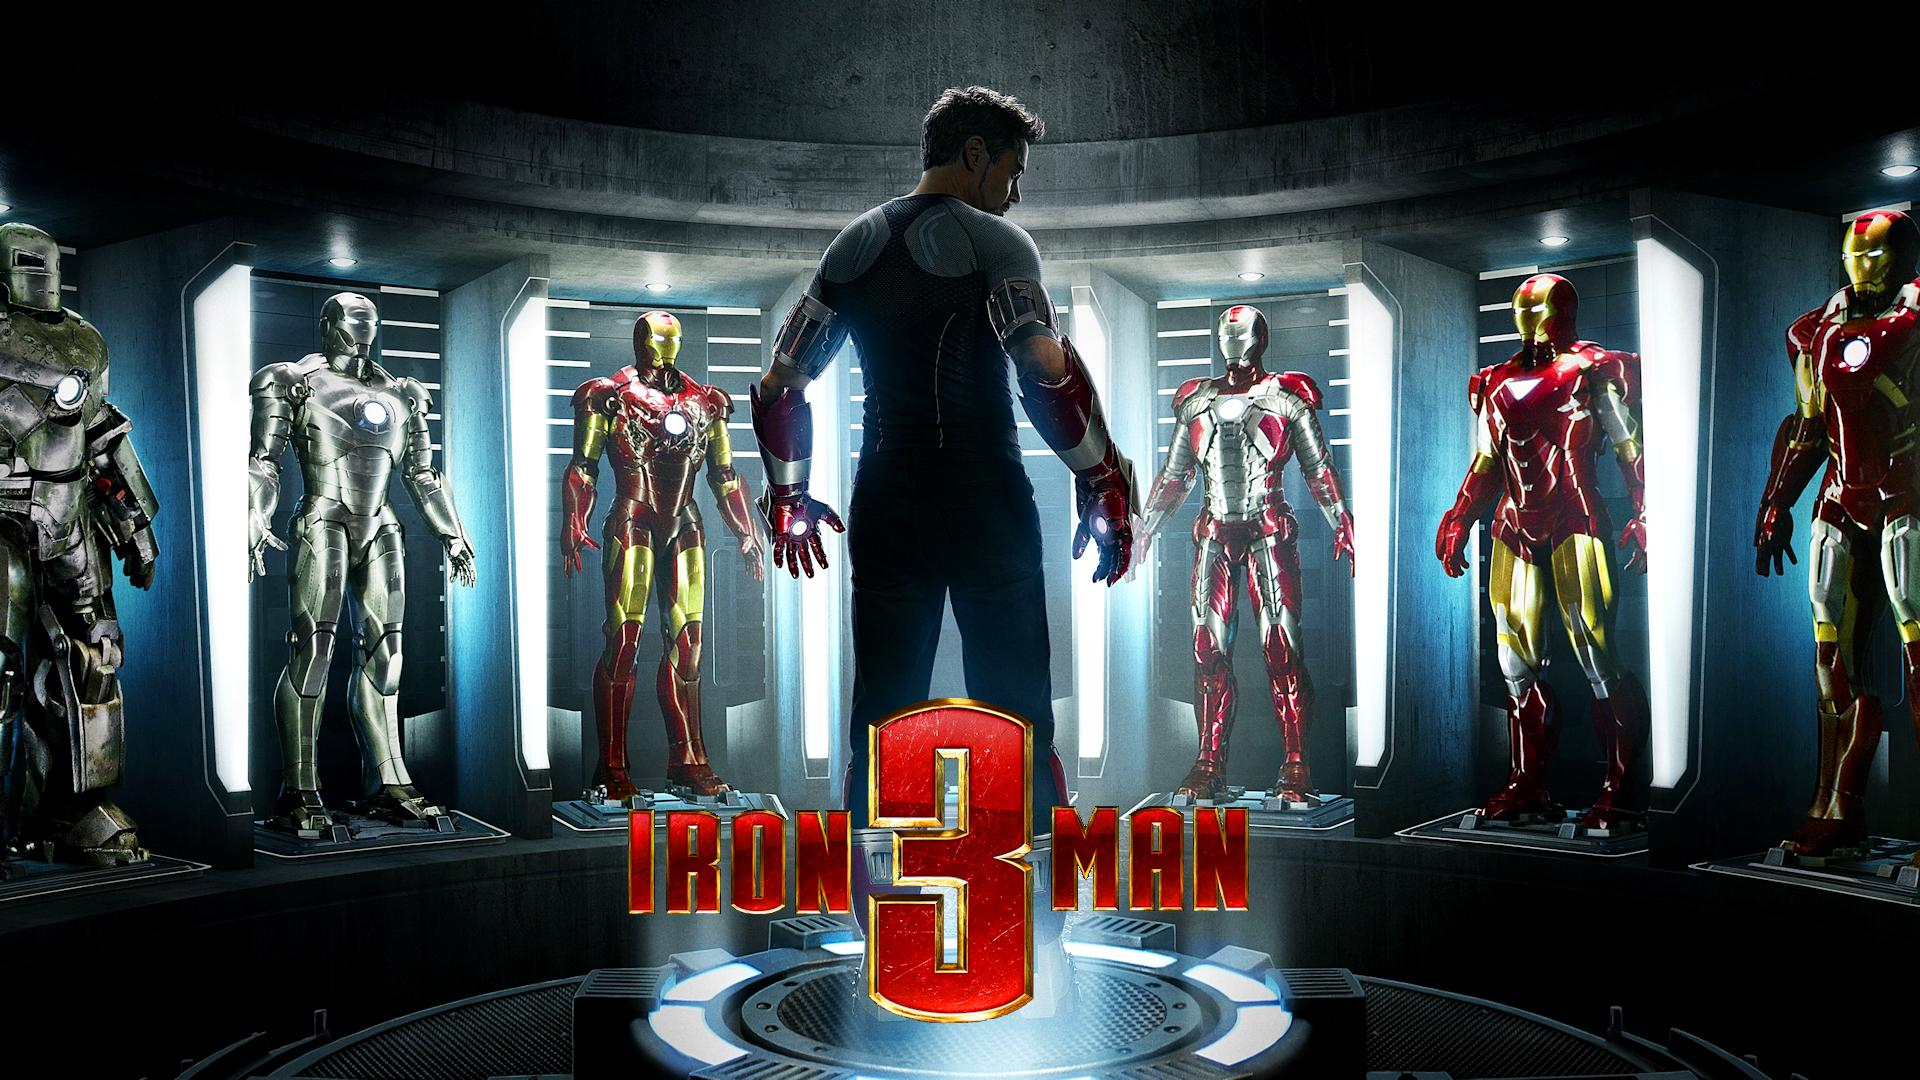 Iron Man 3 Suit Wallpaper